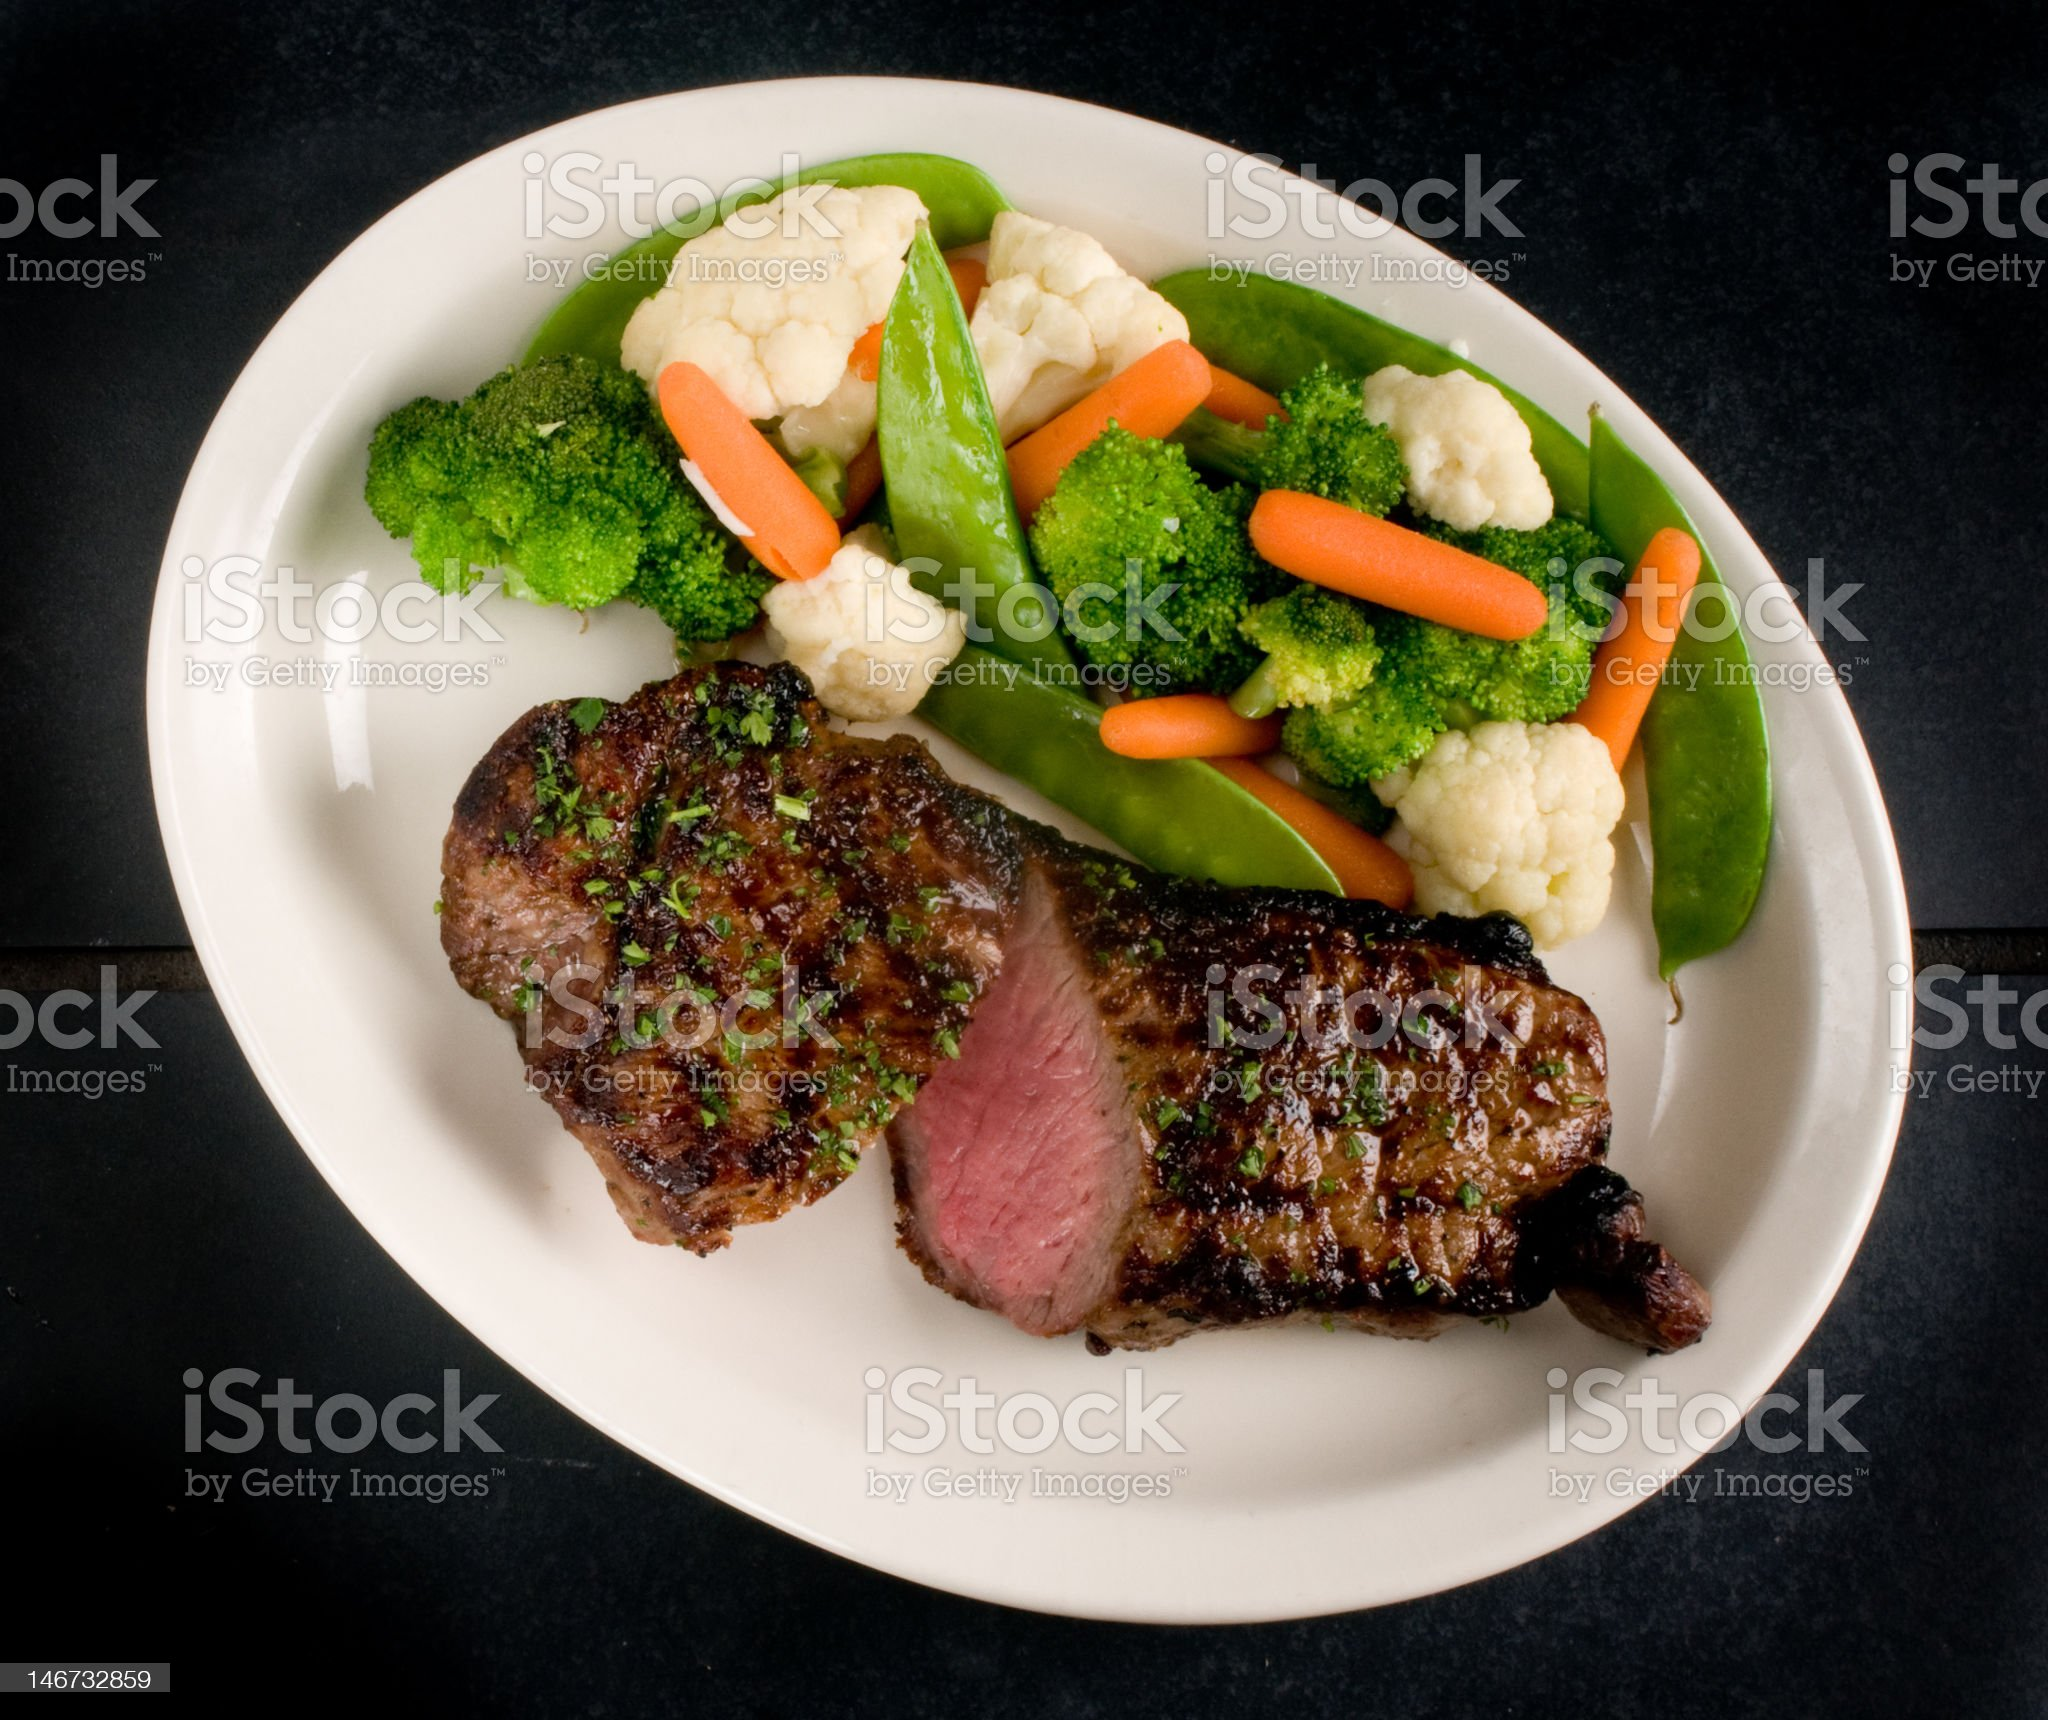 Sliced steak with steamed vegetables royalty-free stock photo